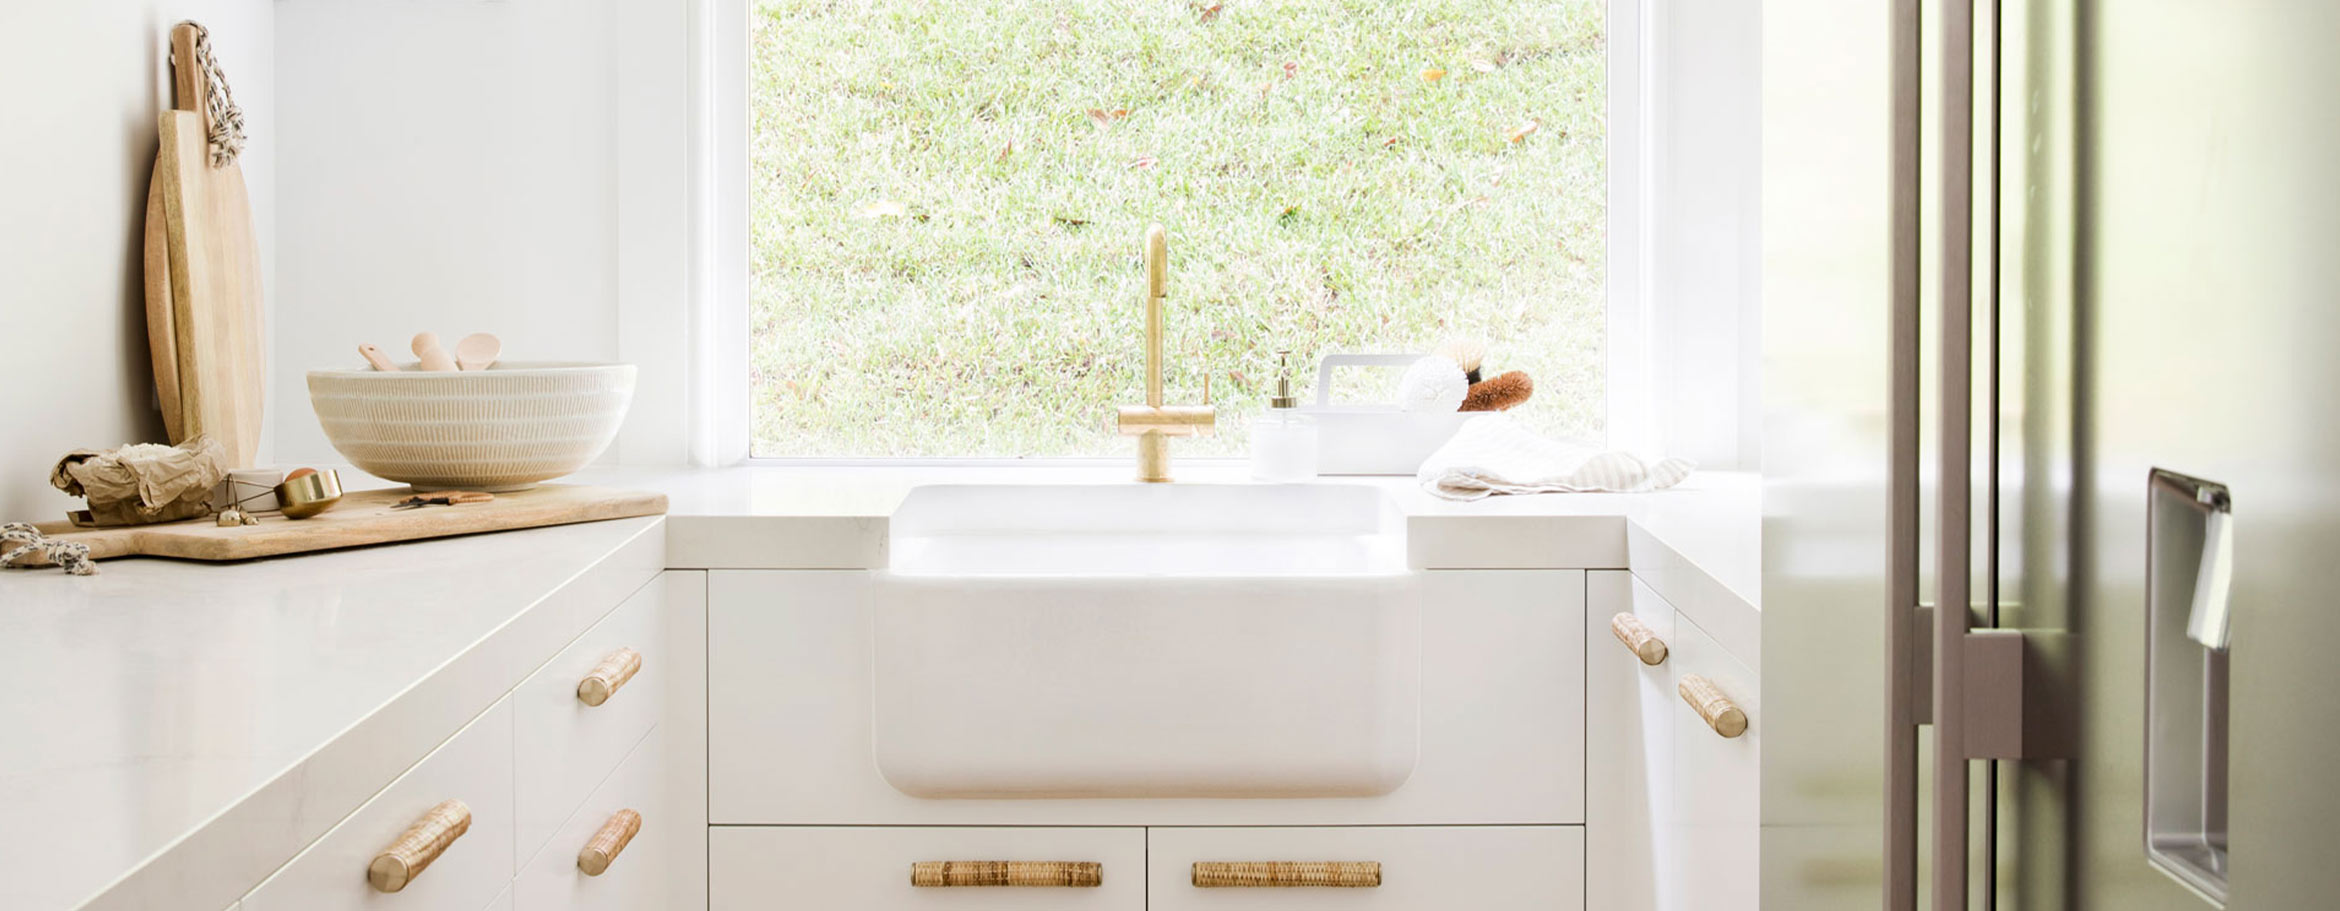 Shaws Butler sink in laundry of House 10 by 3 Birds Renovations. Sinks imported and distributed by Luxe by Design, Brisbane.